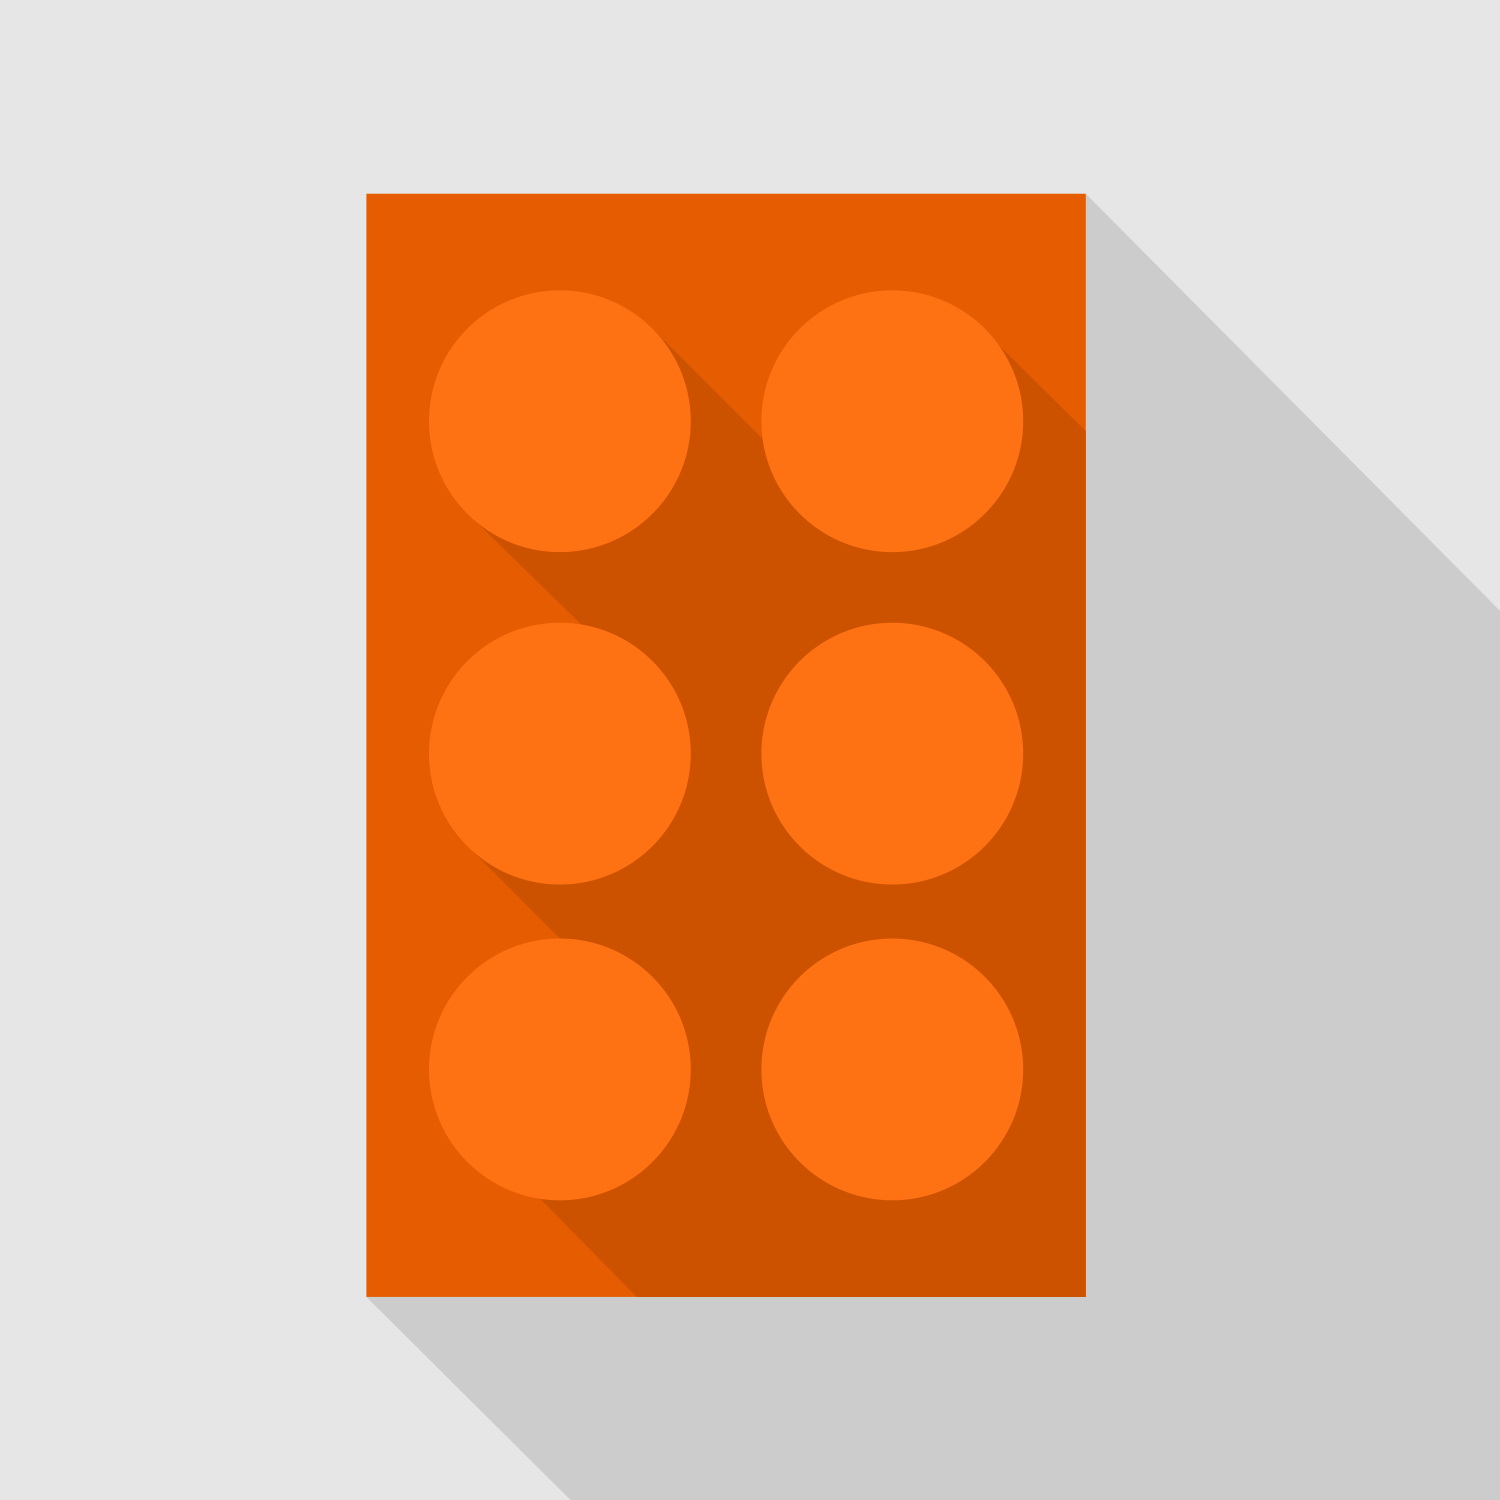 Vector for free use: Lego building block